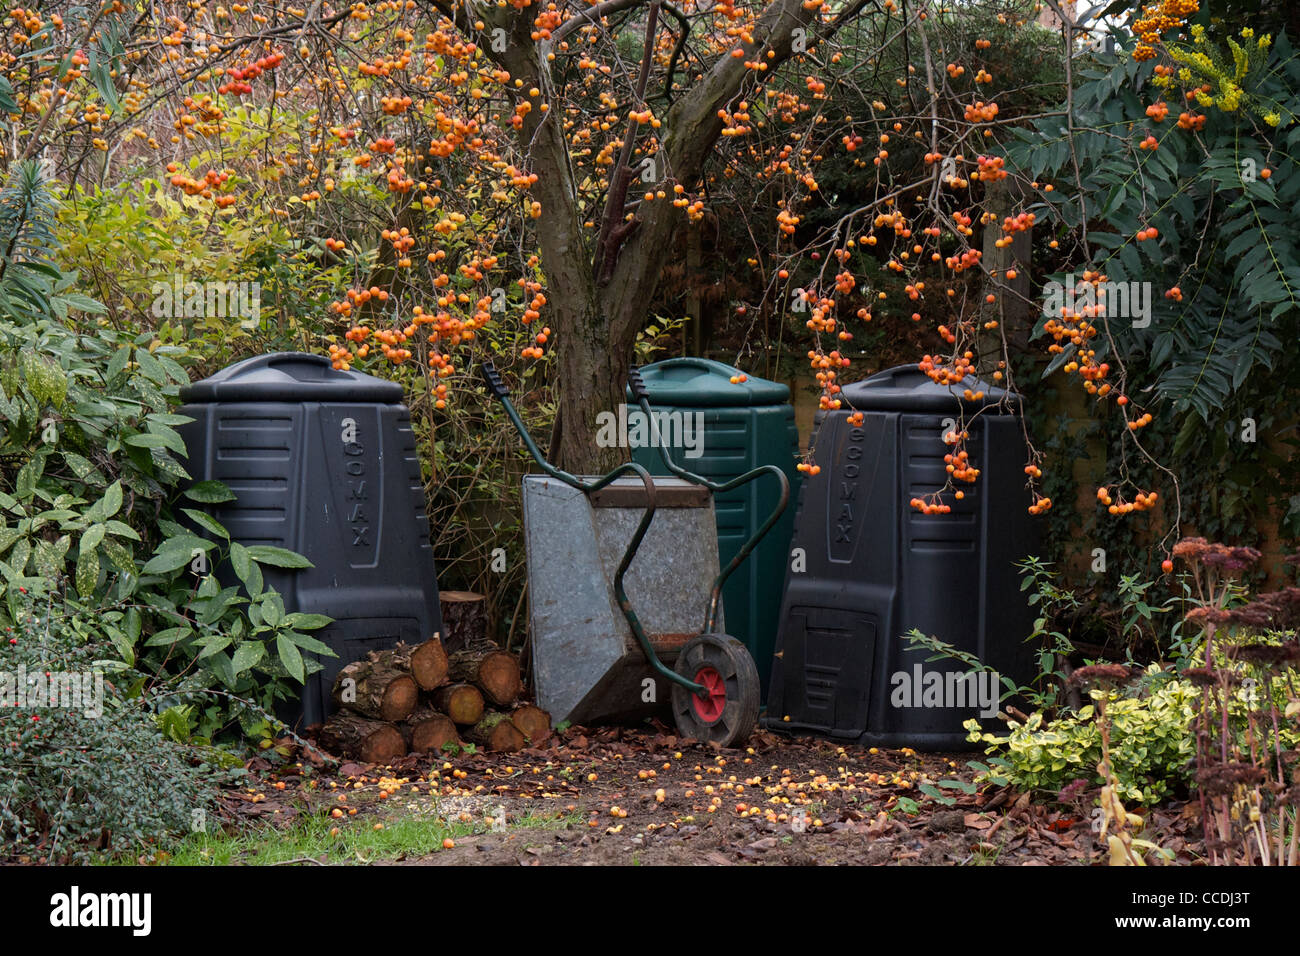 Garden compost bins under a crab apple tree with logs and a wheel barrow. A typical English country garden scene. - Stock Image